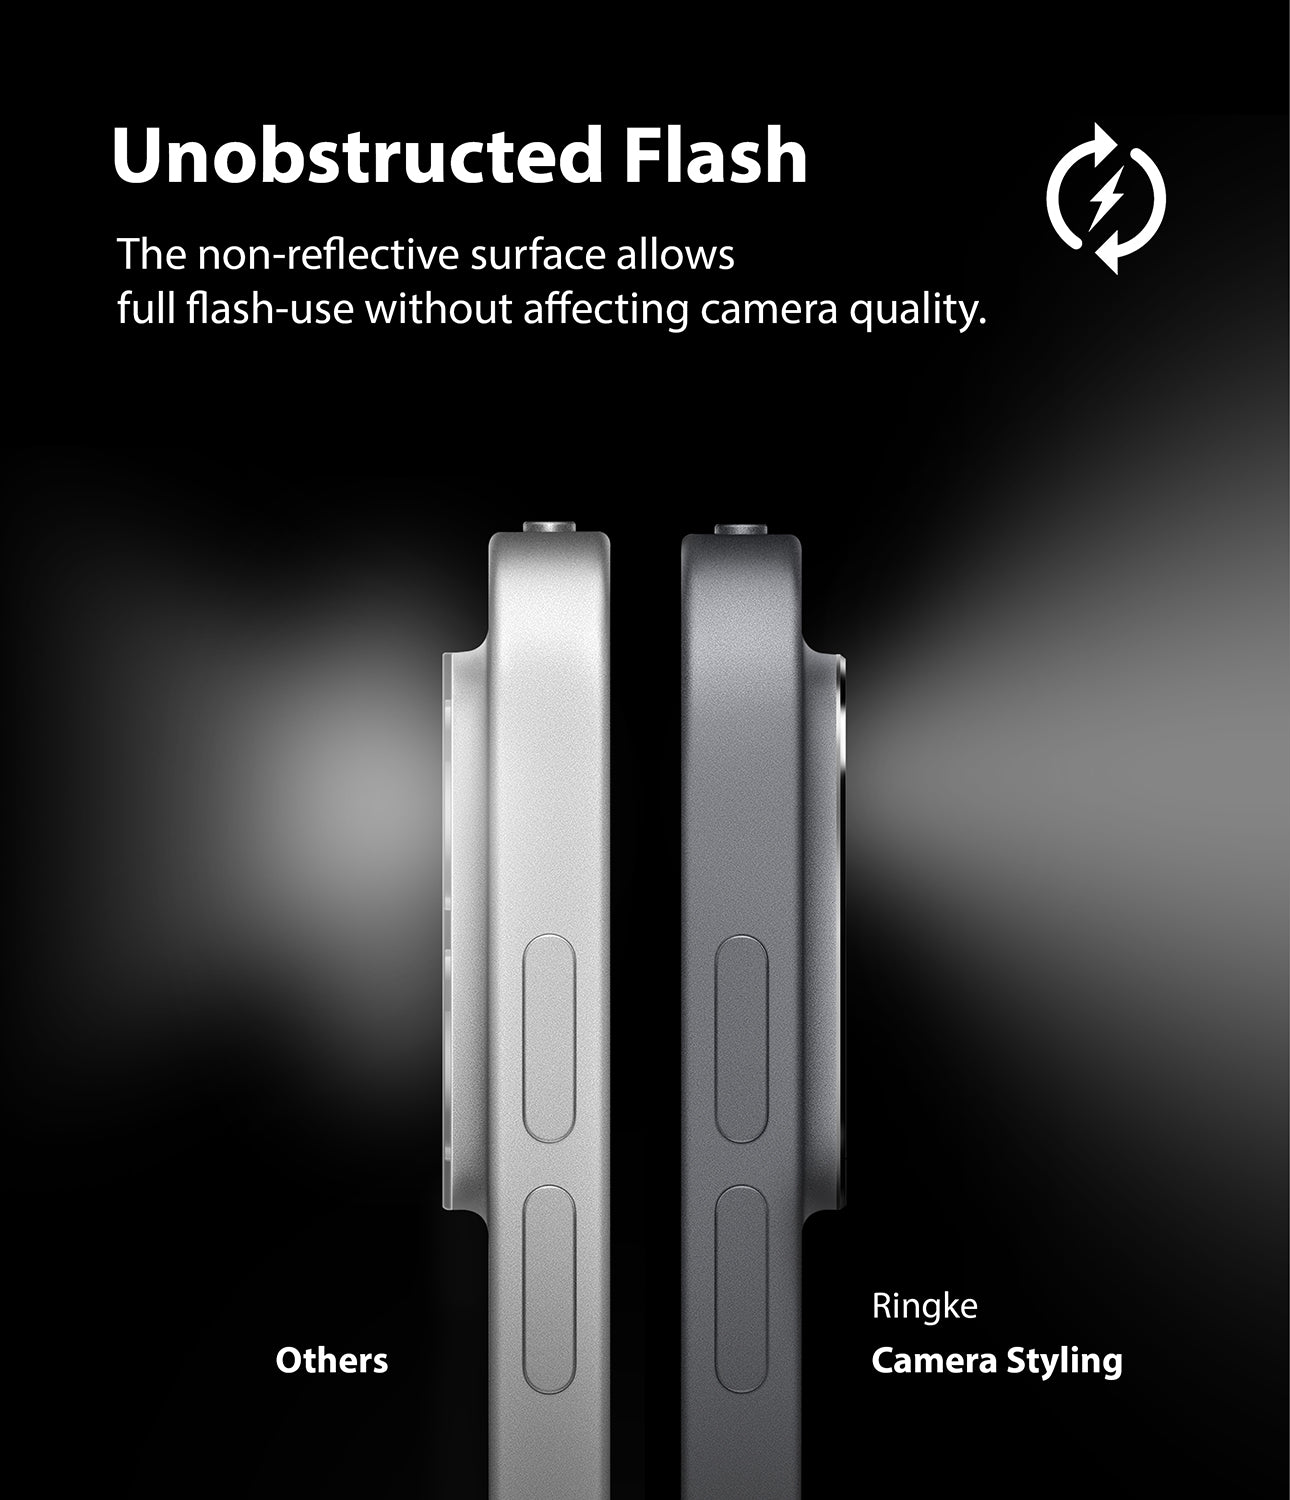 unobstructed flash usage available